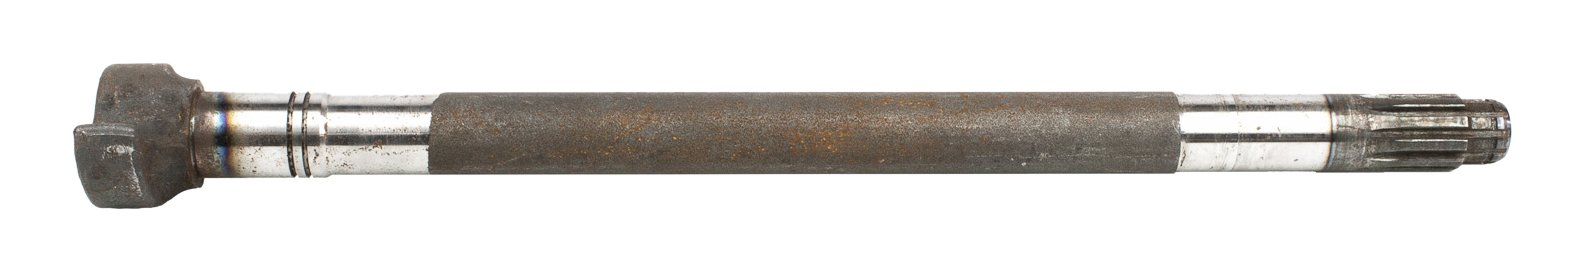 World American WA05-5188 Right Hand Trailer Axle Camshaft by World American